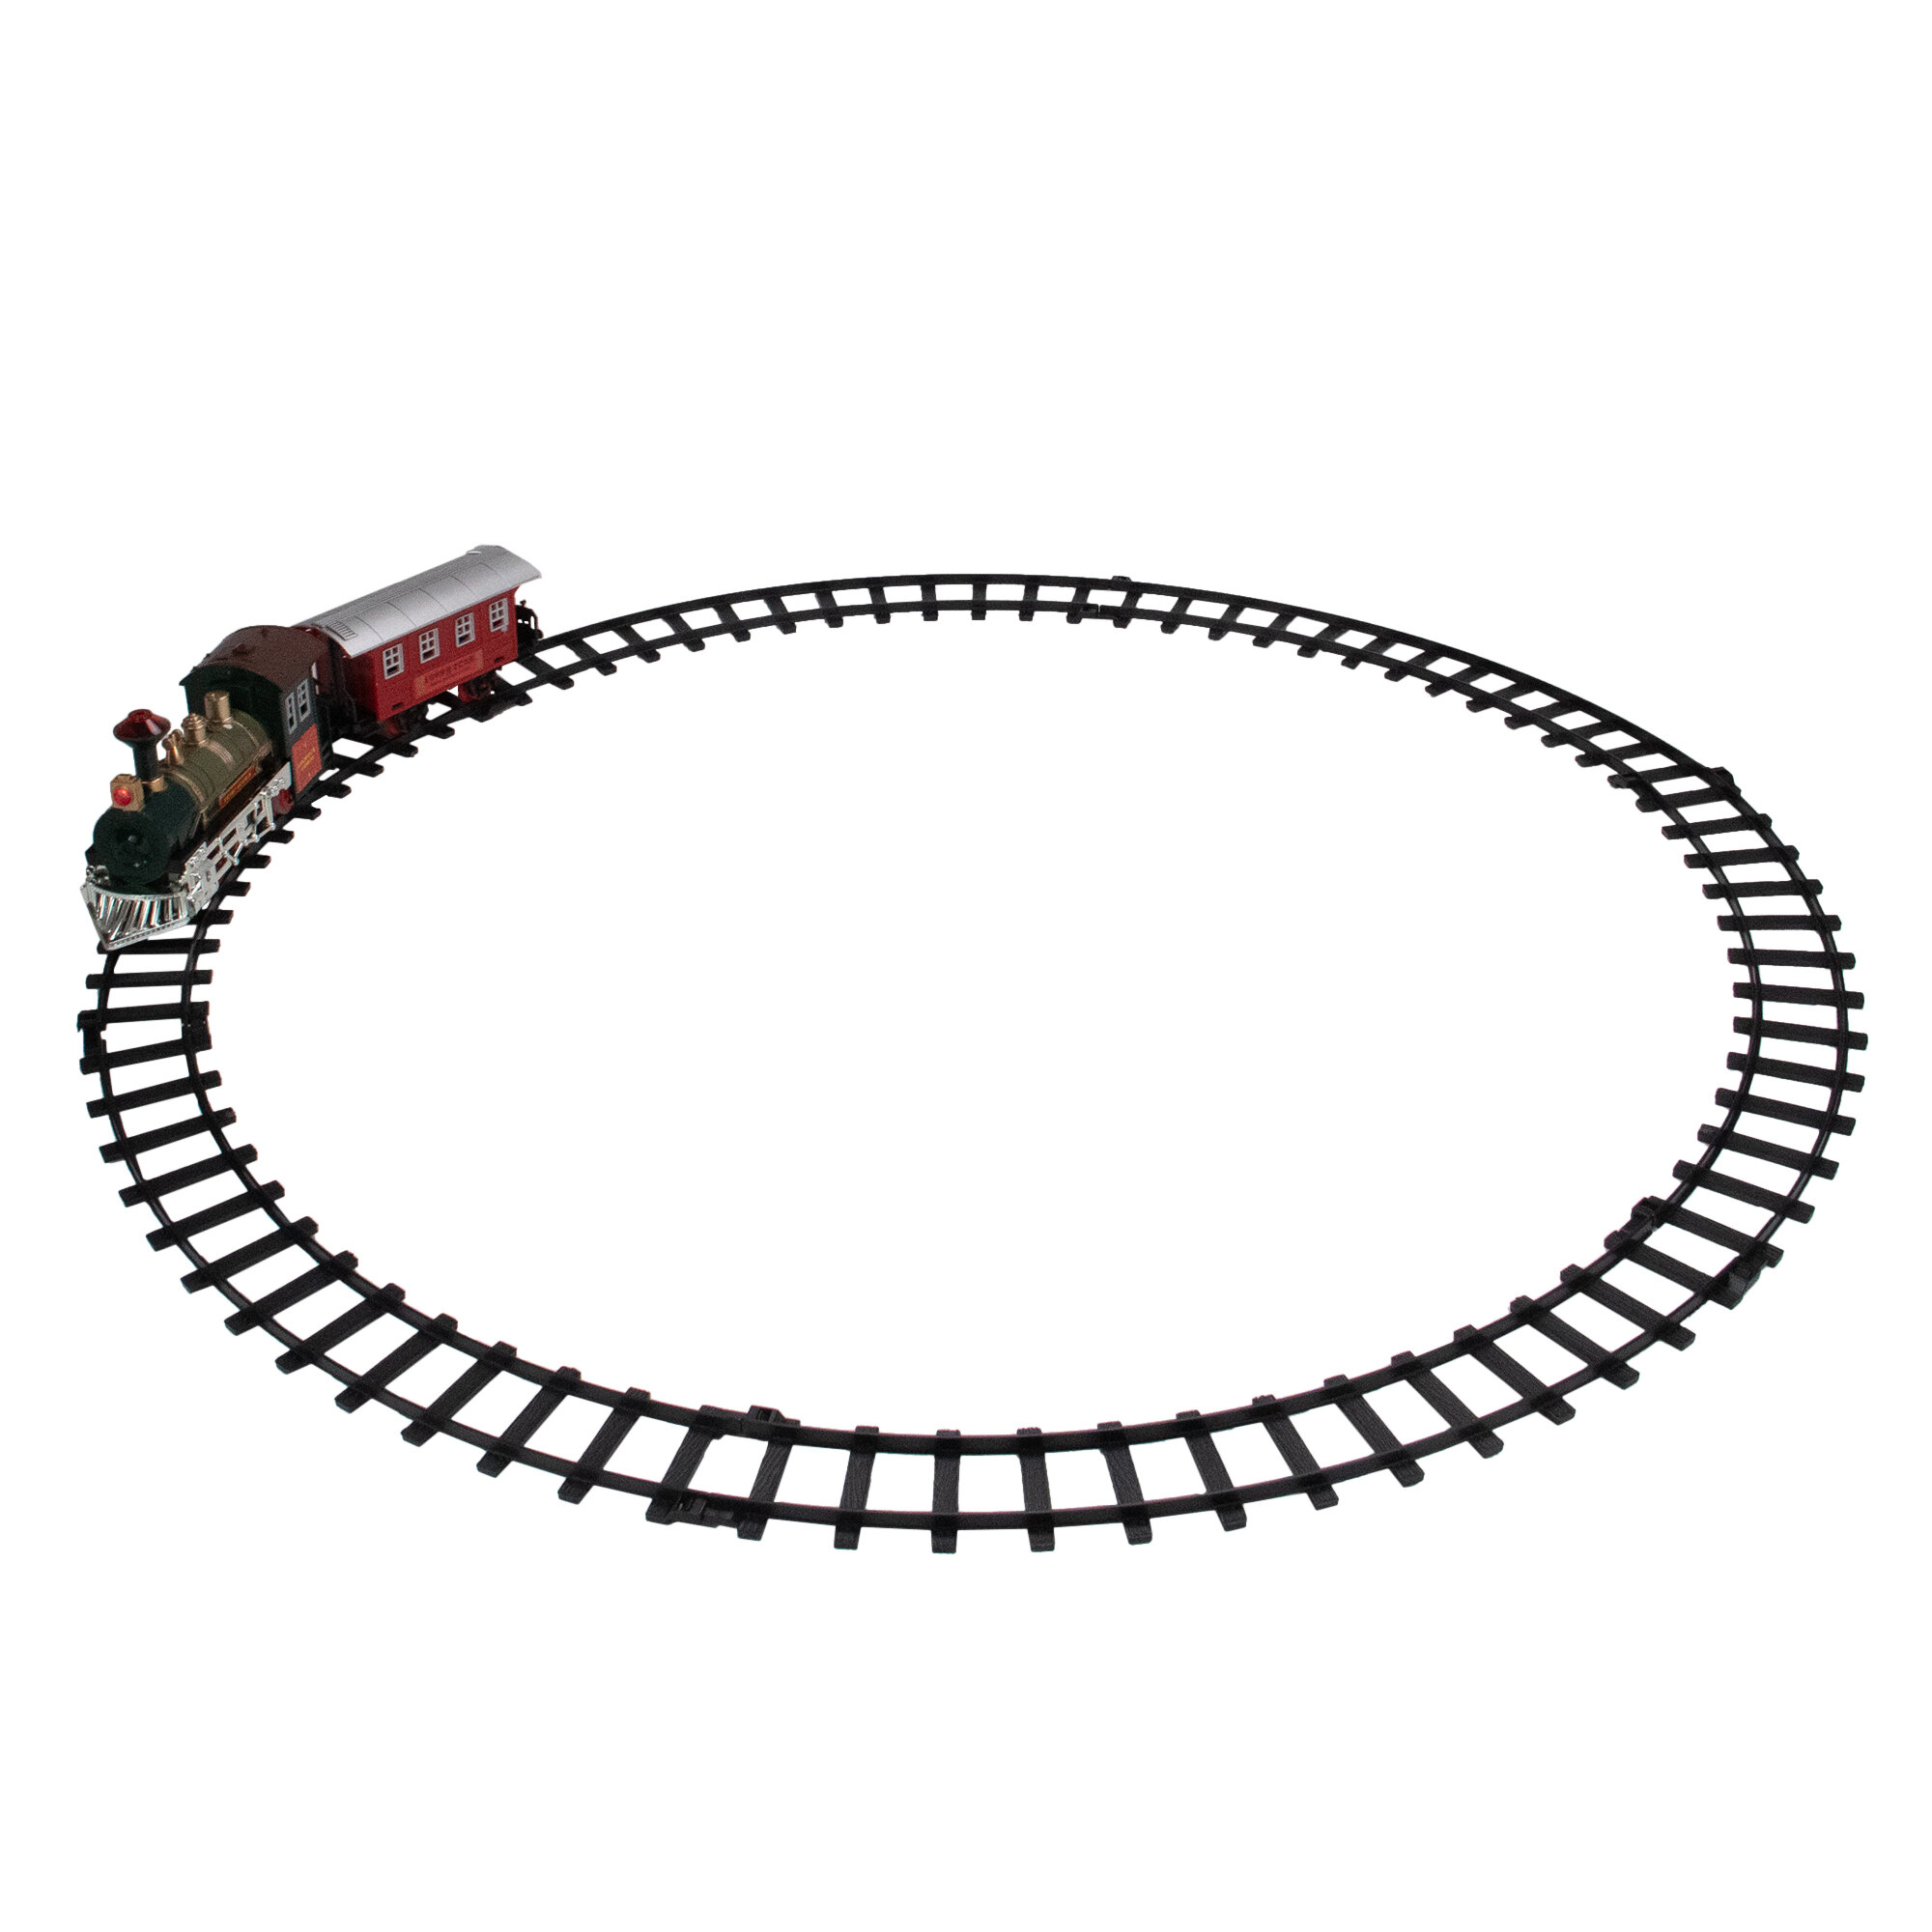 Northlight 8 Piece Battery Operated Classic Train Decorative Accent Set Wayfair